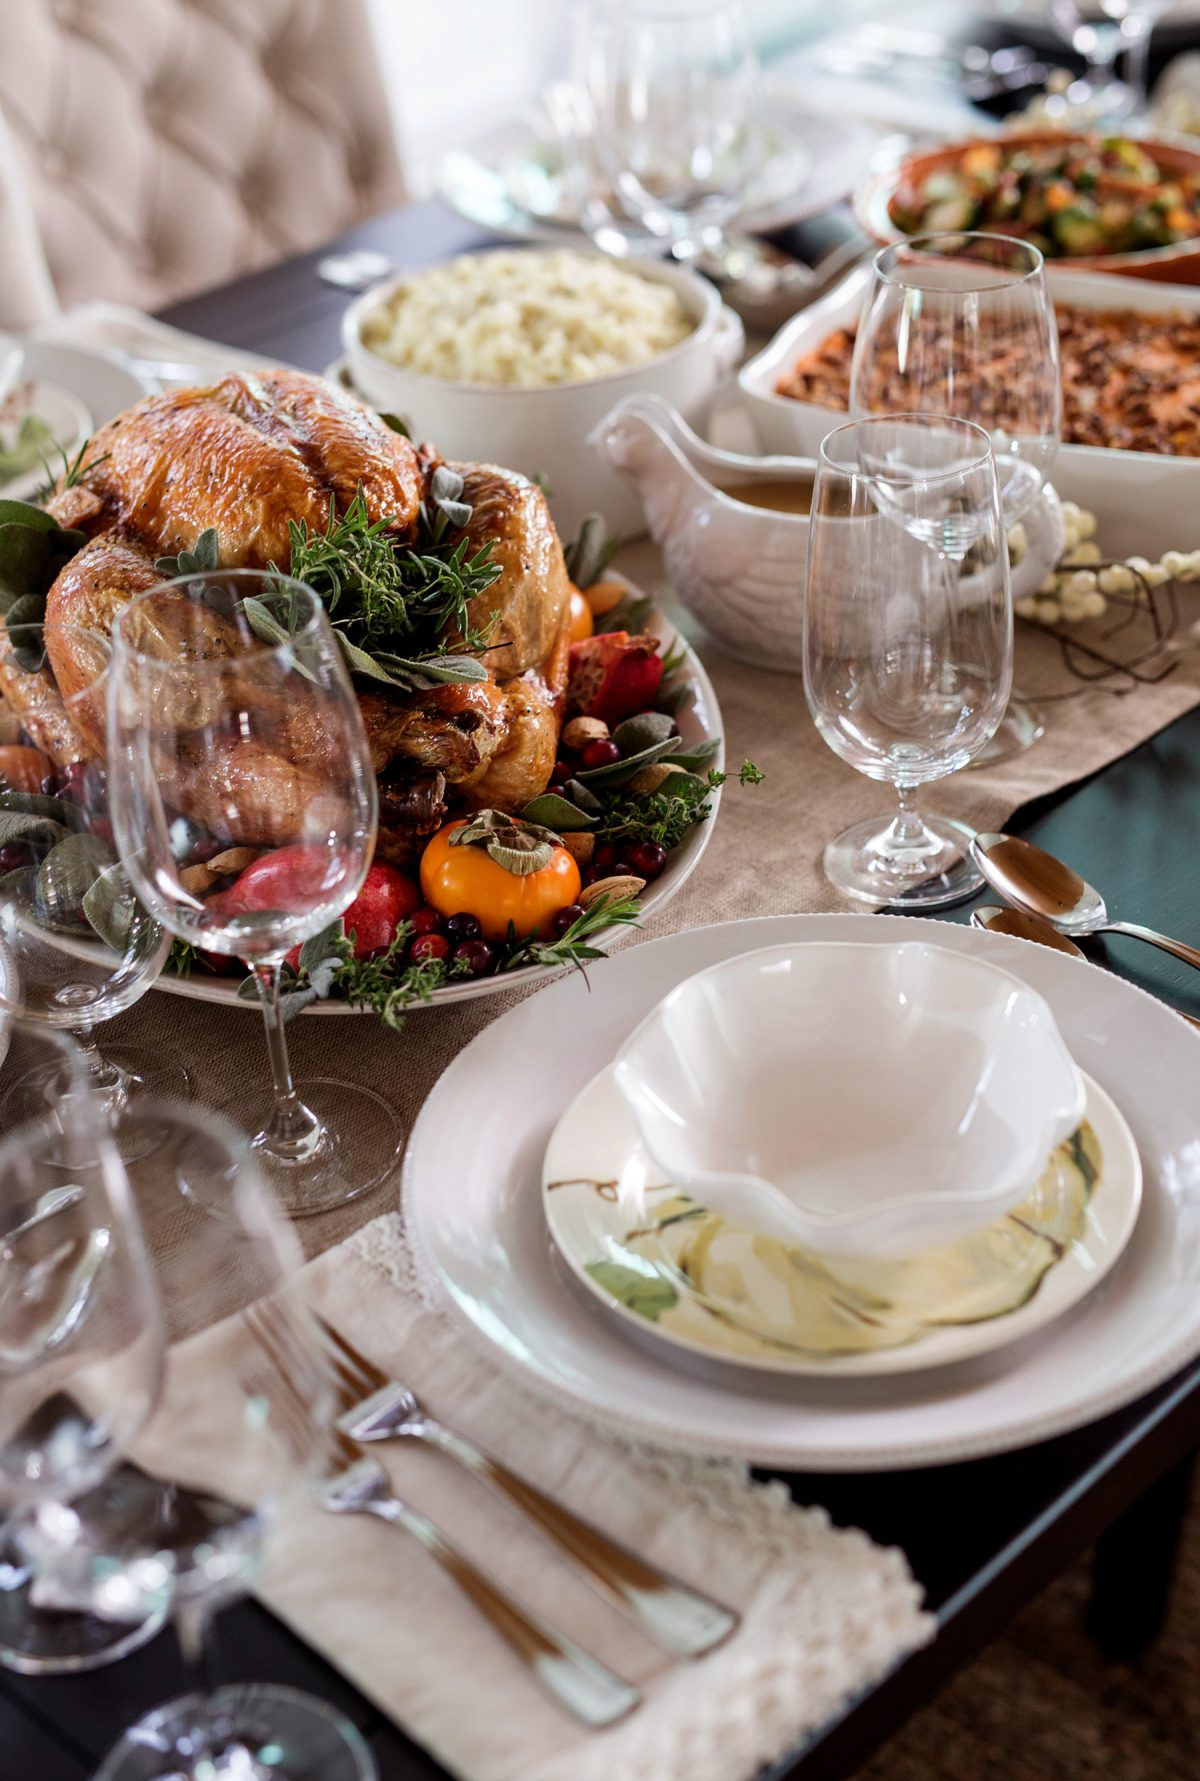 Turkey and sides on the Thanksgiving dinner table